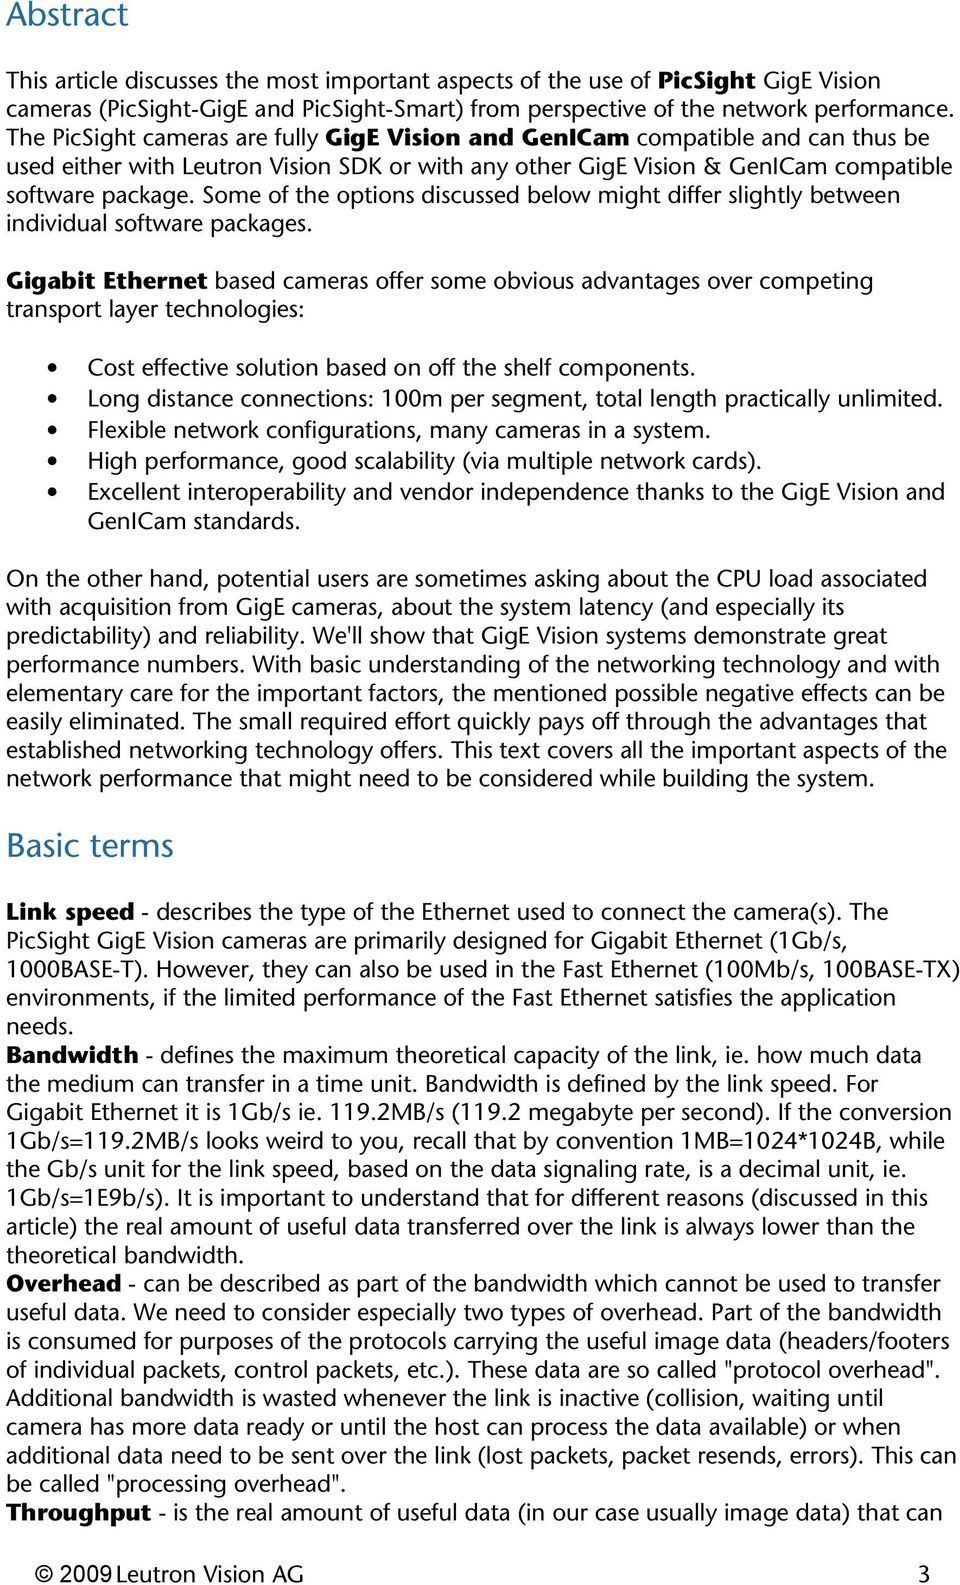 GigE Vision cameras and network performance - PDF